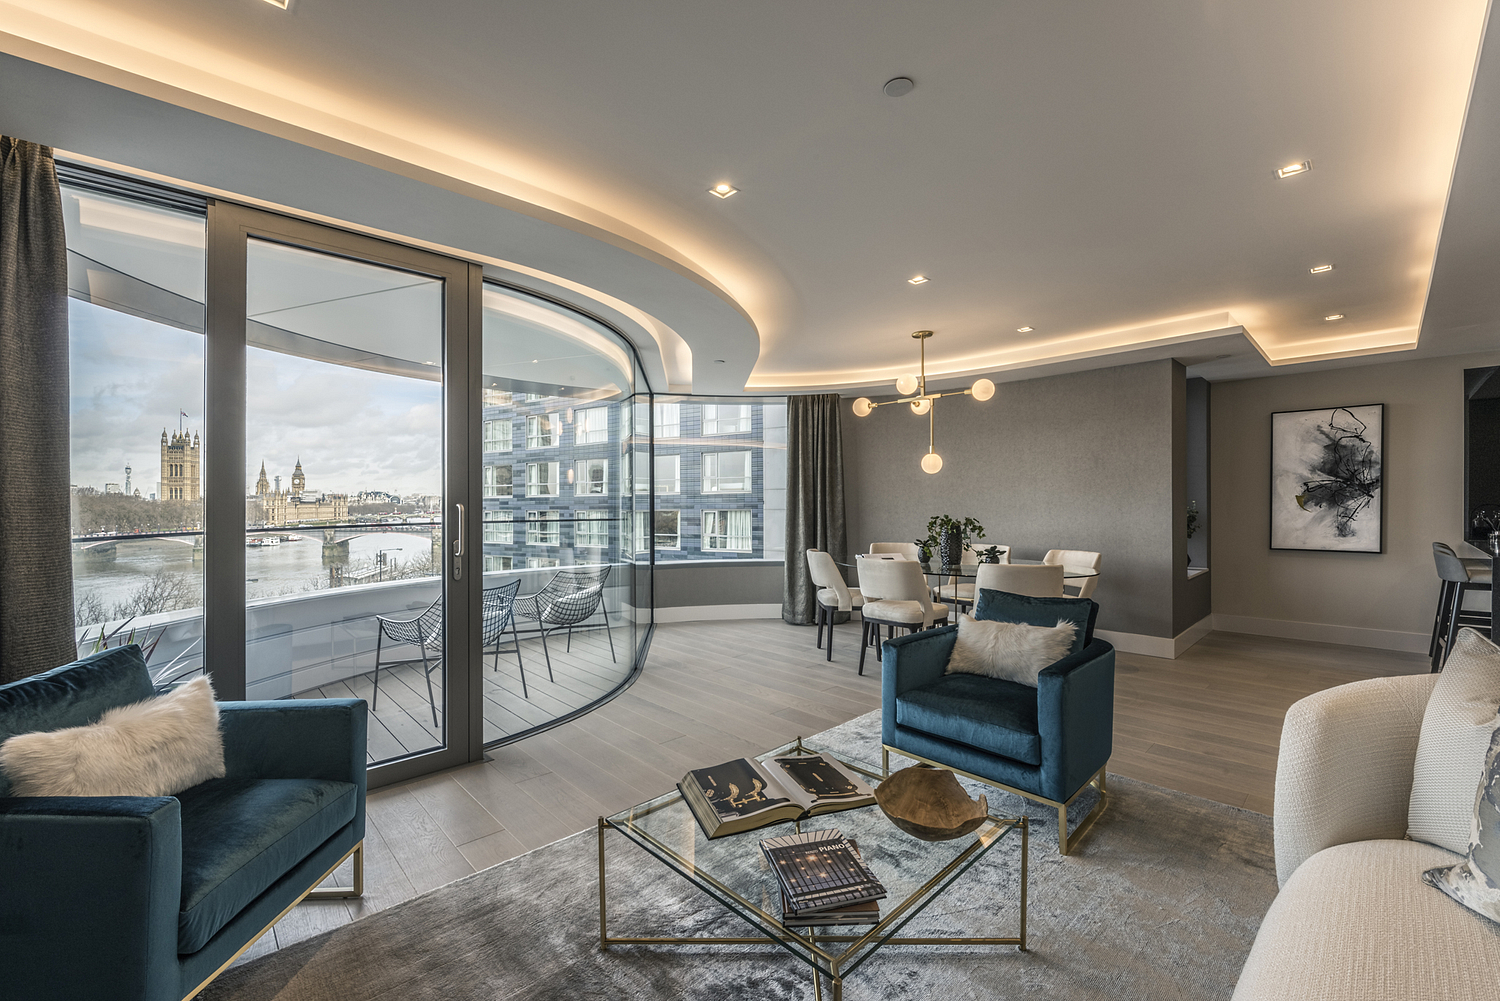 Sitting room with view across River Thames, London